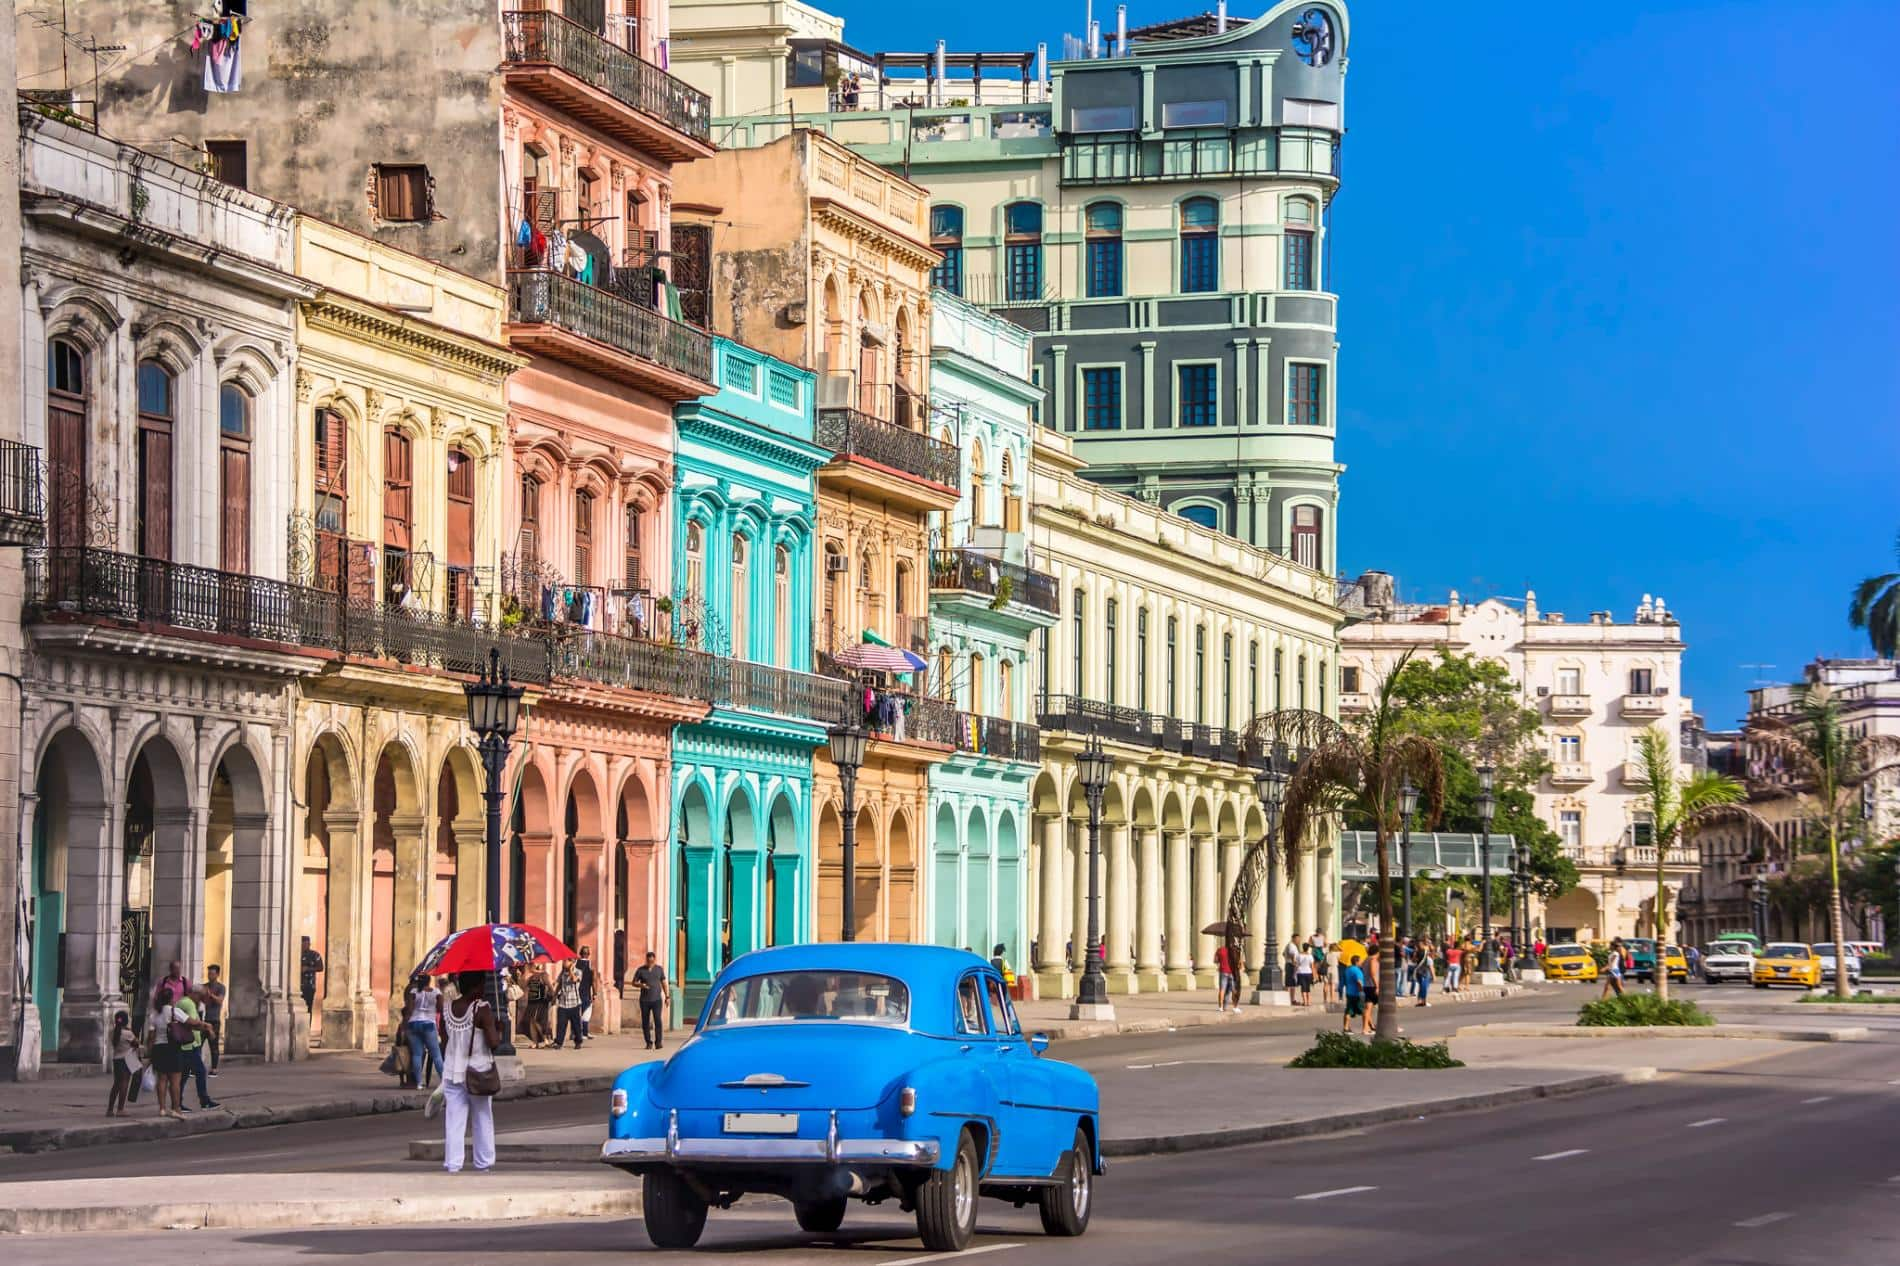 Los Angeles to Havana Cuba $182-$230 RT Airfares on Aeromexico or American Airlines Main Cabin (Travel Aug-Sept 2020)